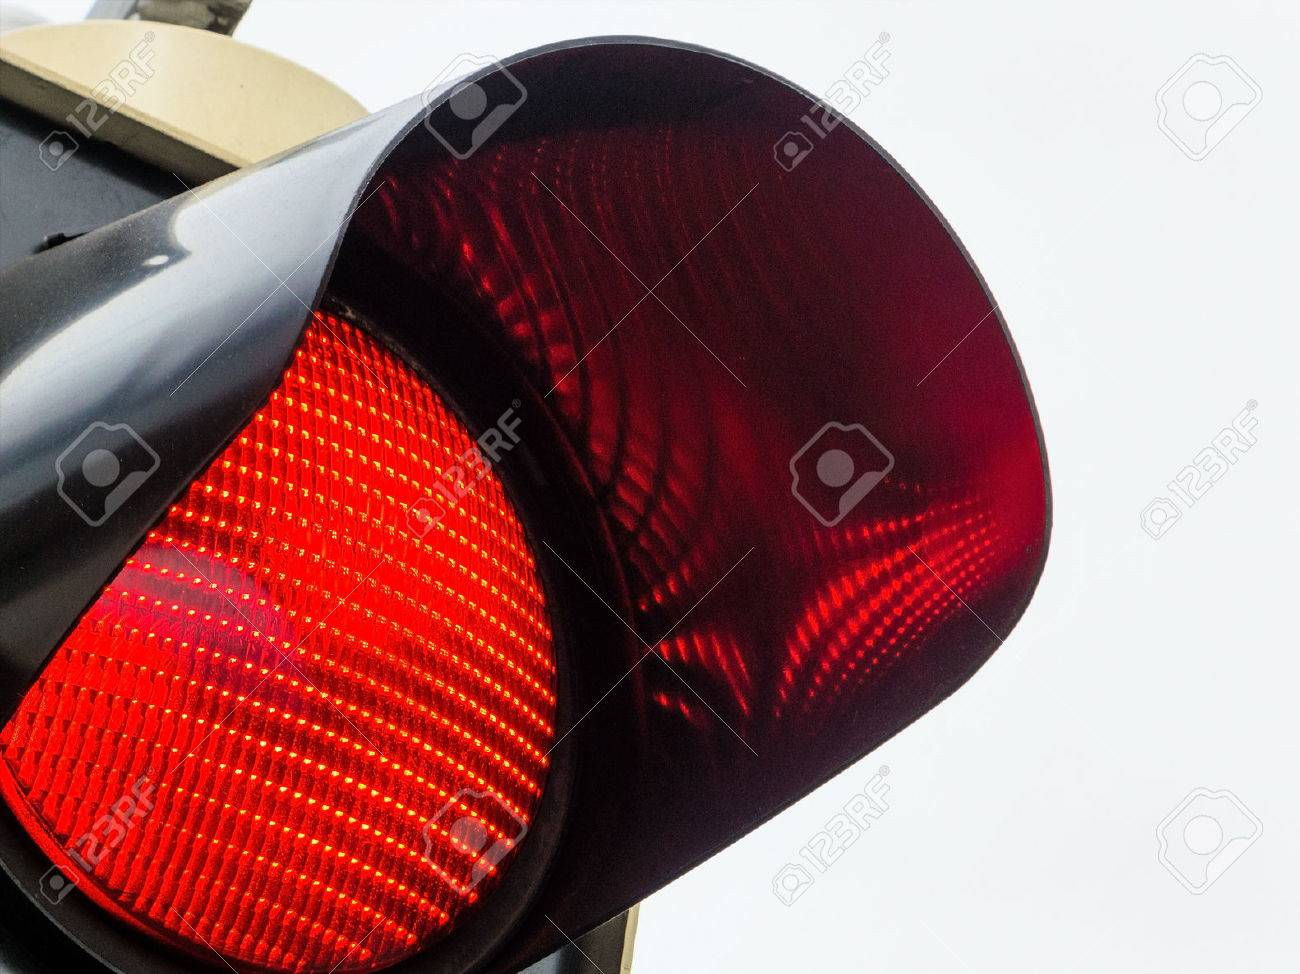 a traffic light shows red light. symbolic photo for maintenance, exit and risk. Stock Photo - 44801062